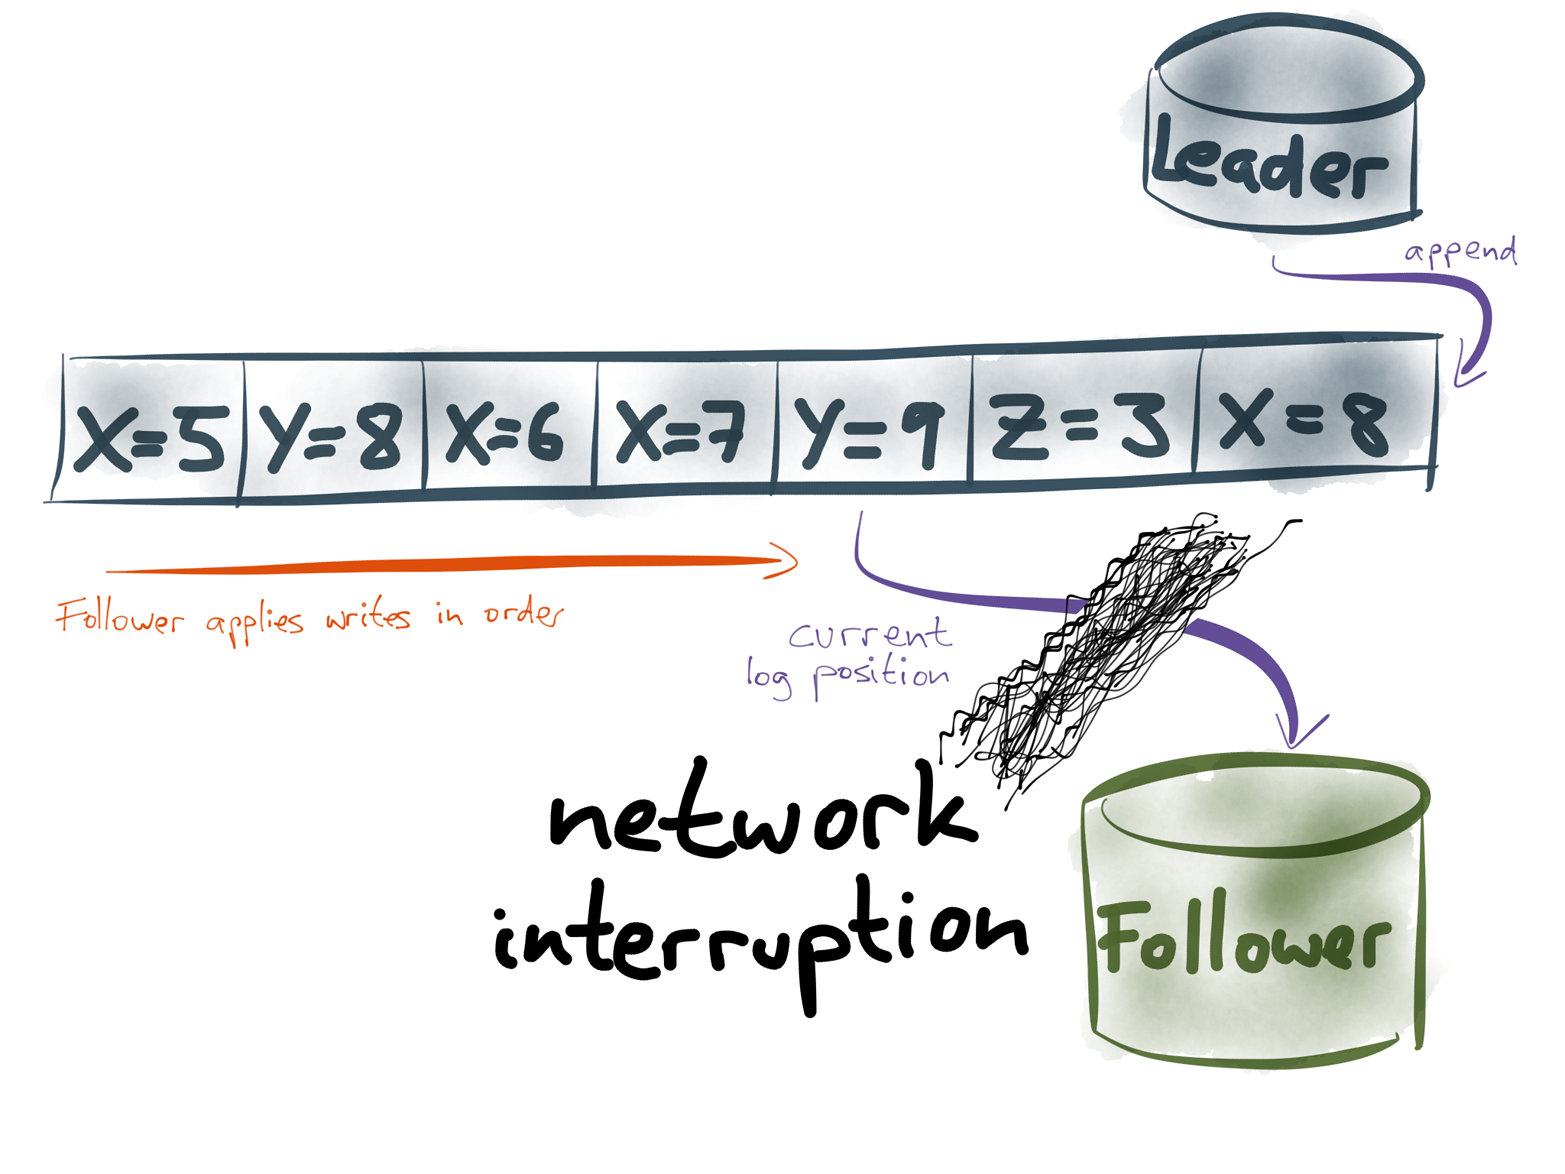 A network interruption causes the follower to stop applying writes from the log, but it can easily resume replication when the network is repaired.